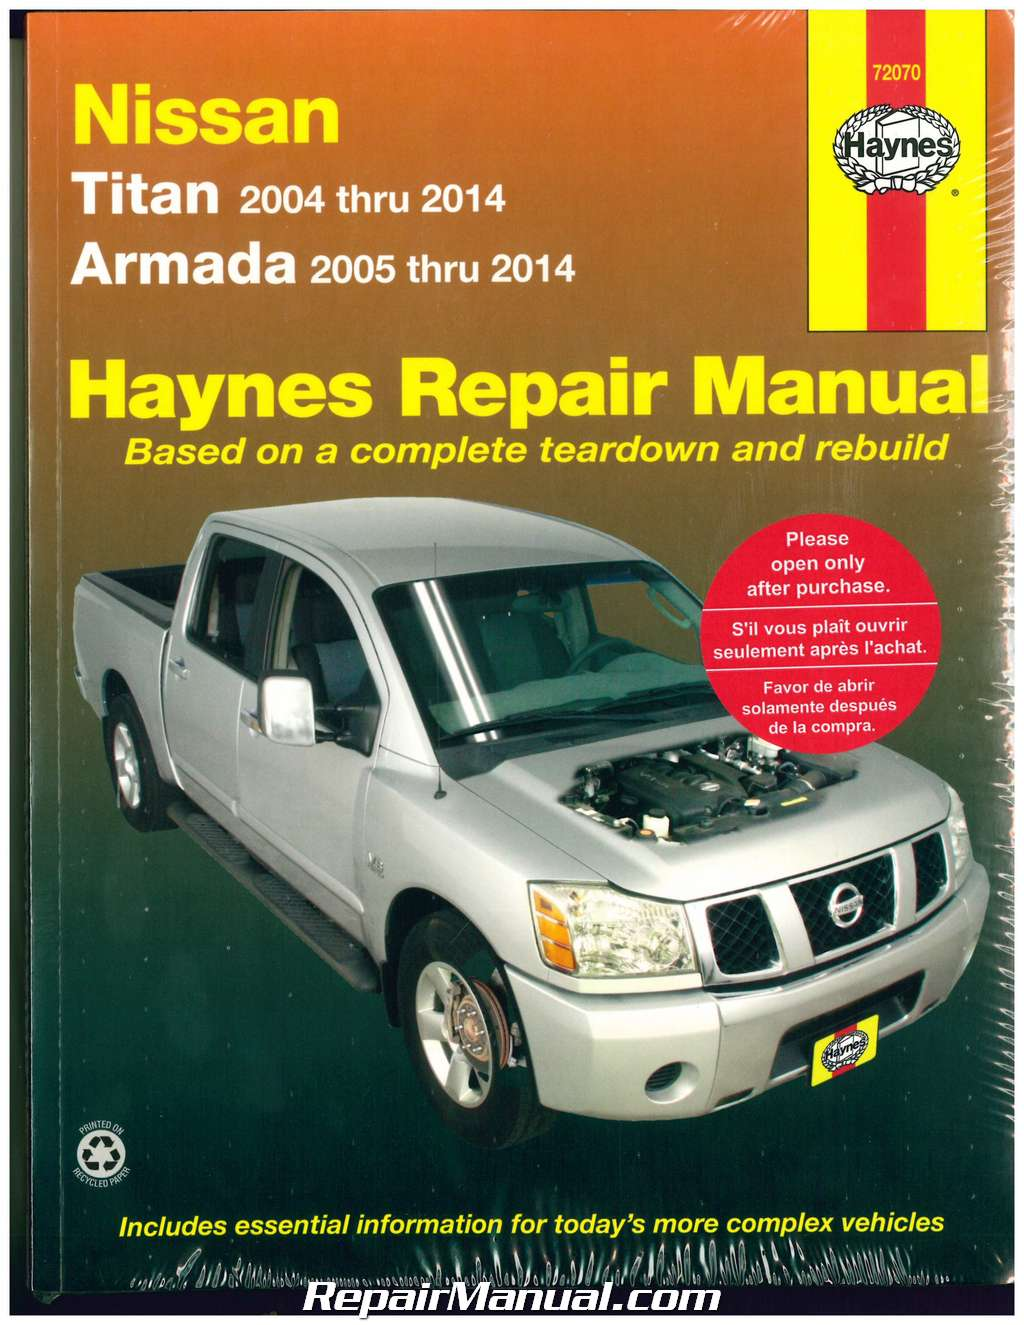 Nissan Titan 2004-2014, Nissan Armada 2005-2014 Haynes Automotive Repair  Manual